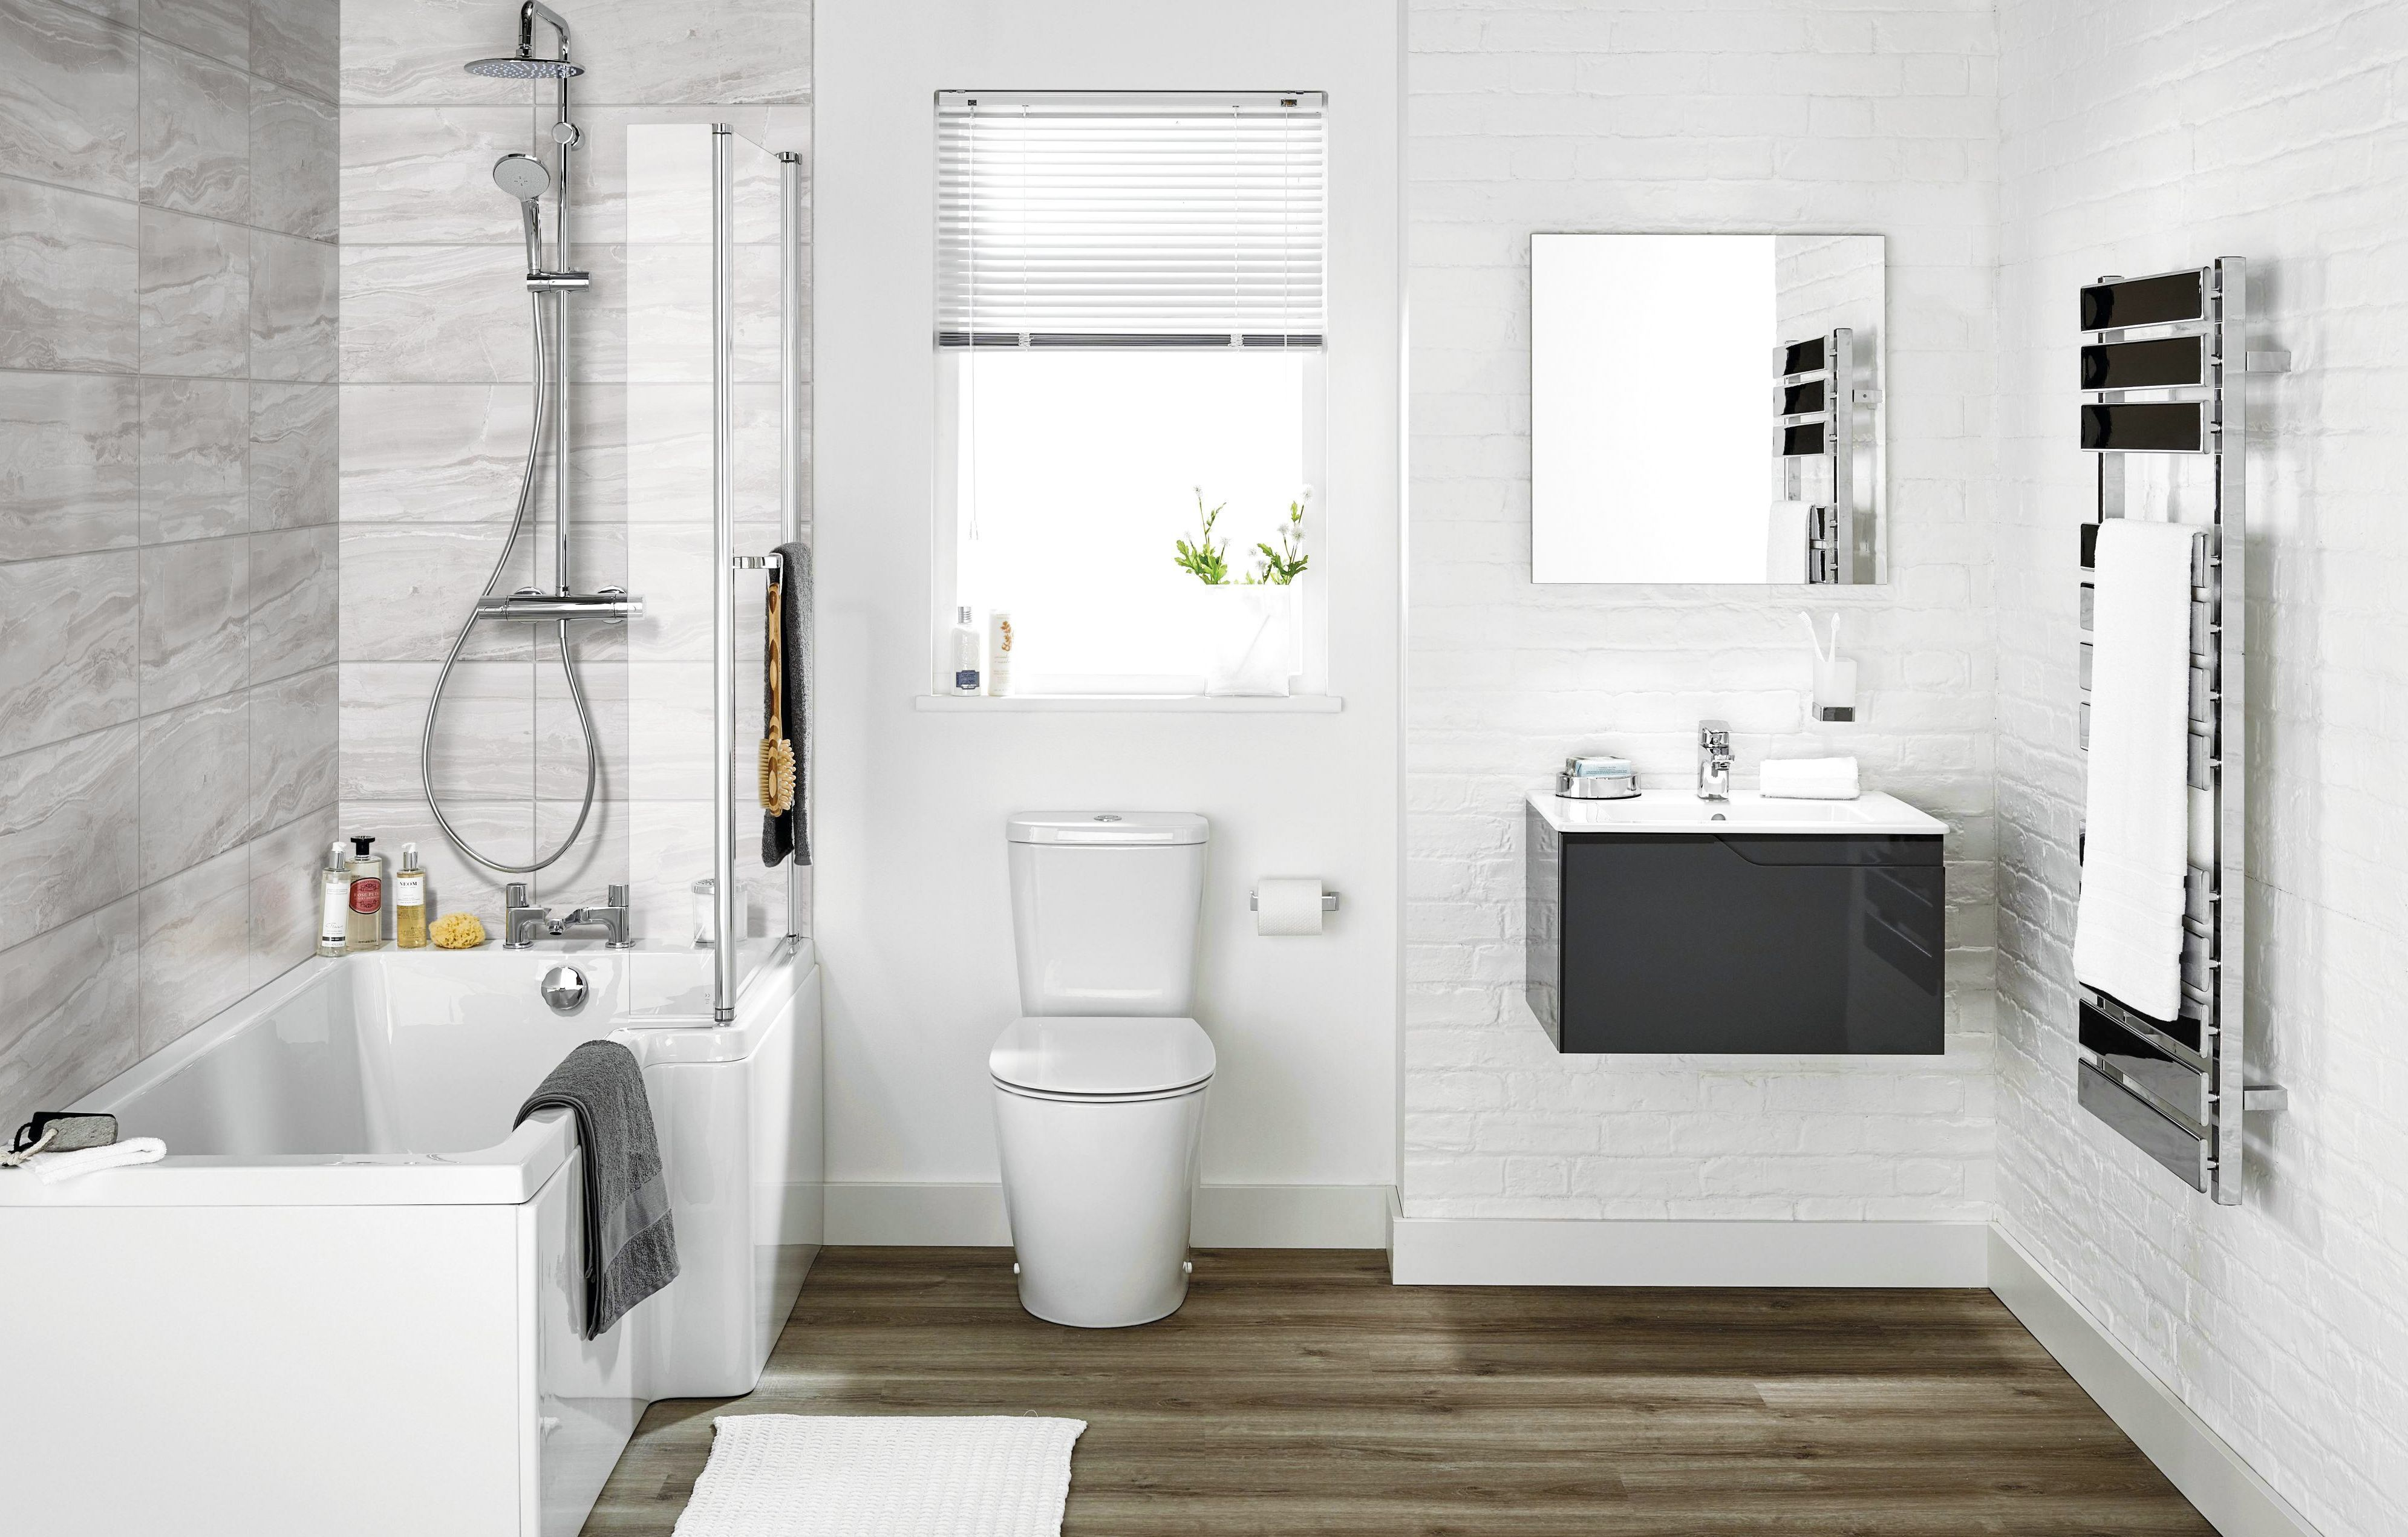 Take your bathroom to the next level - inspirational